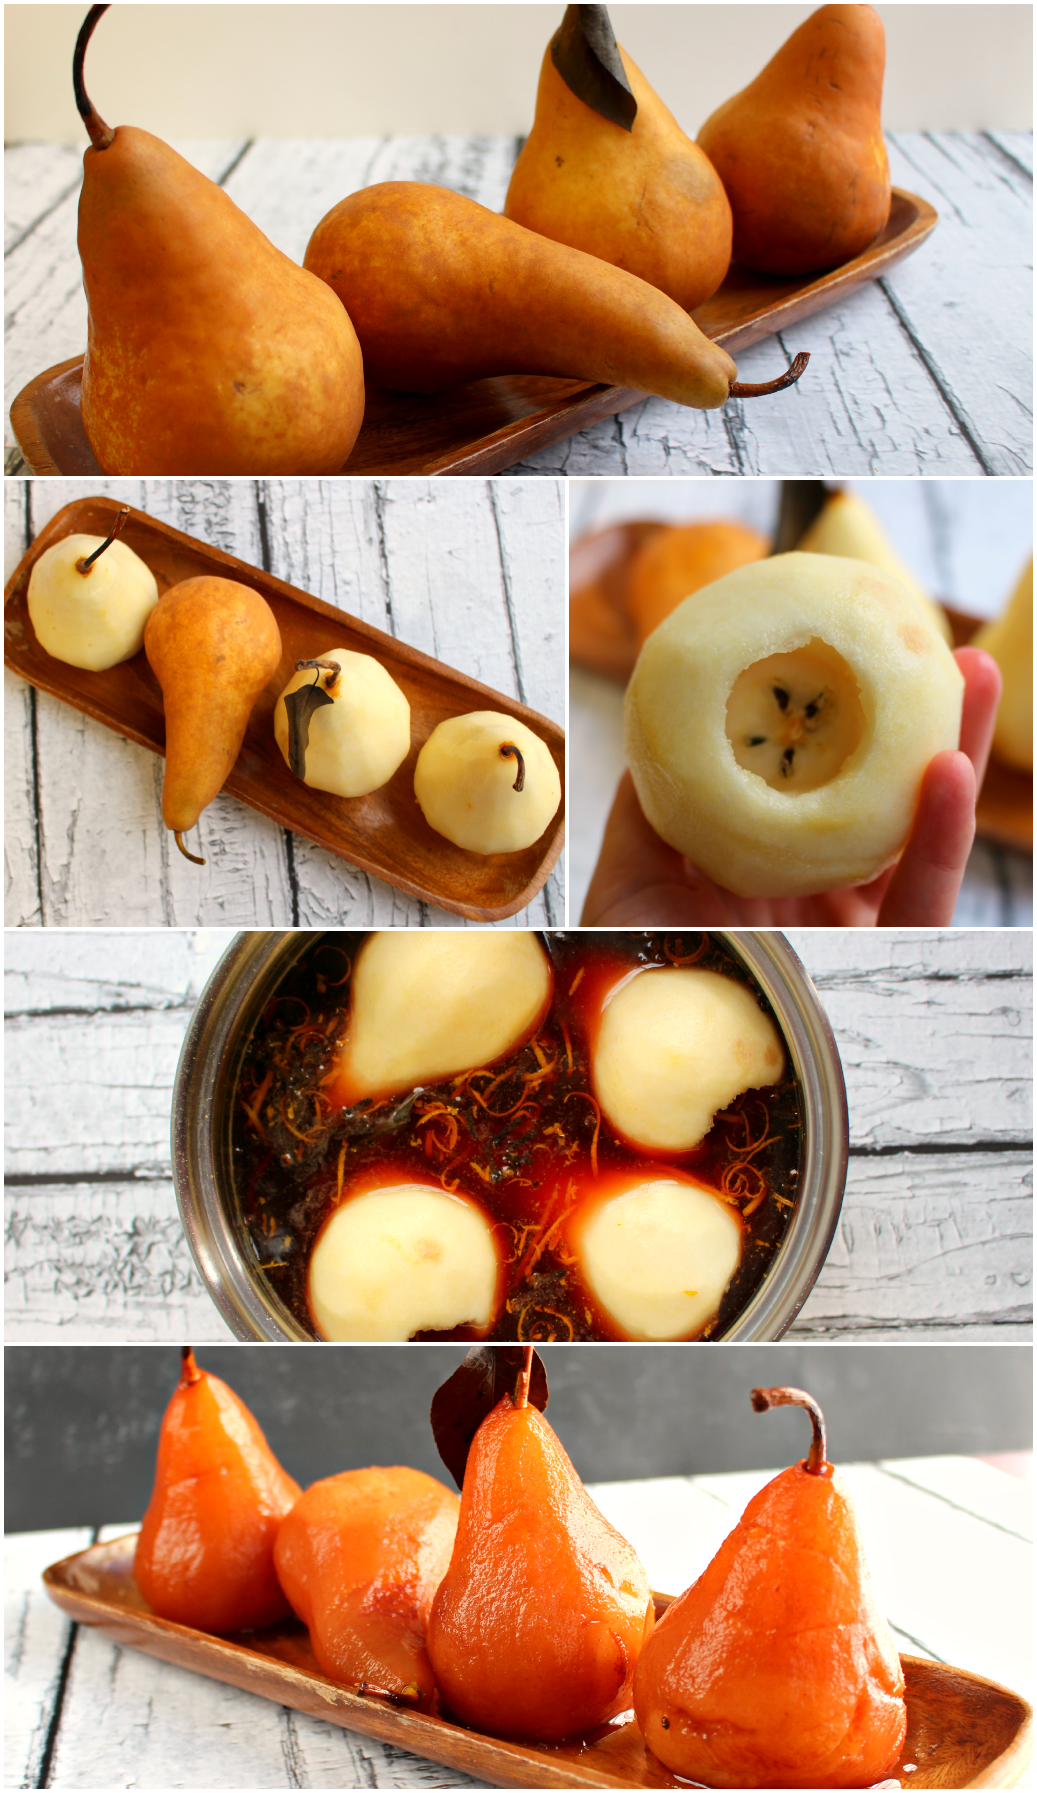 These pears are incredible easy to make, and will be a show-stopper at your next party or holiday gathering as a gorgeous appetizer. The perfect pairing with cocktails or wine!